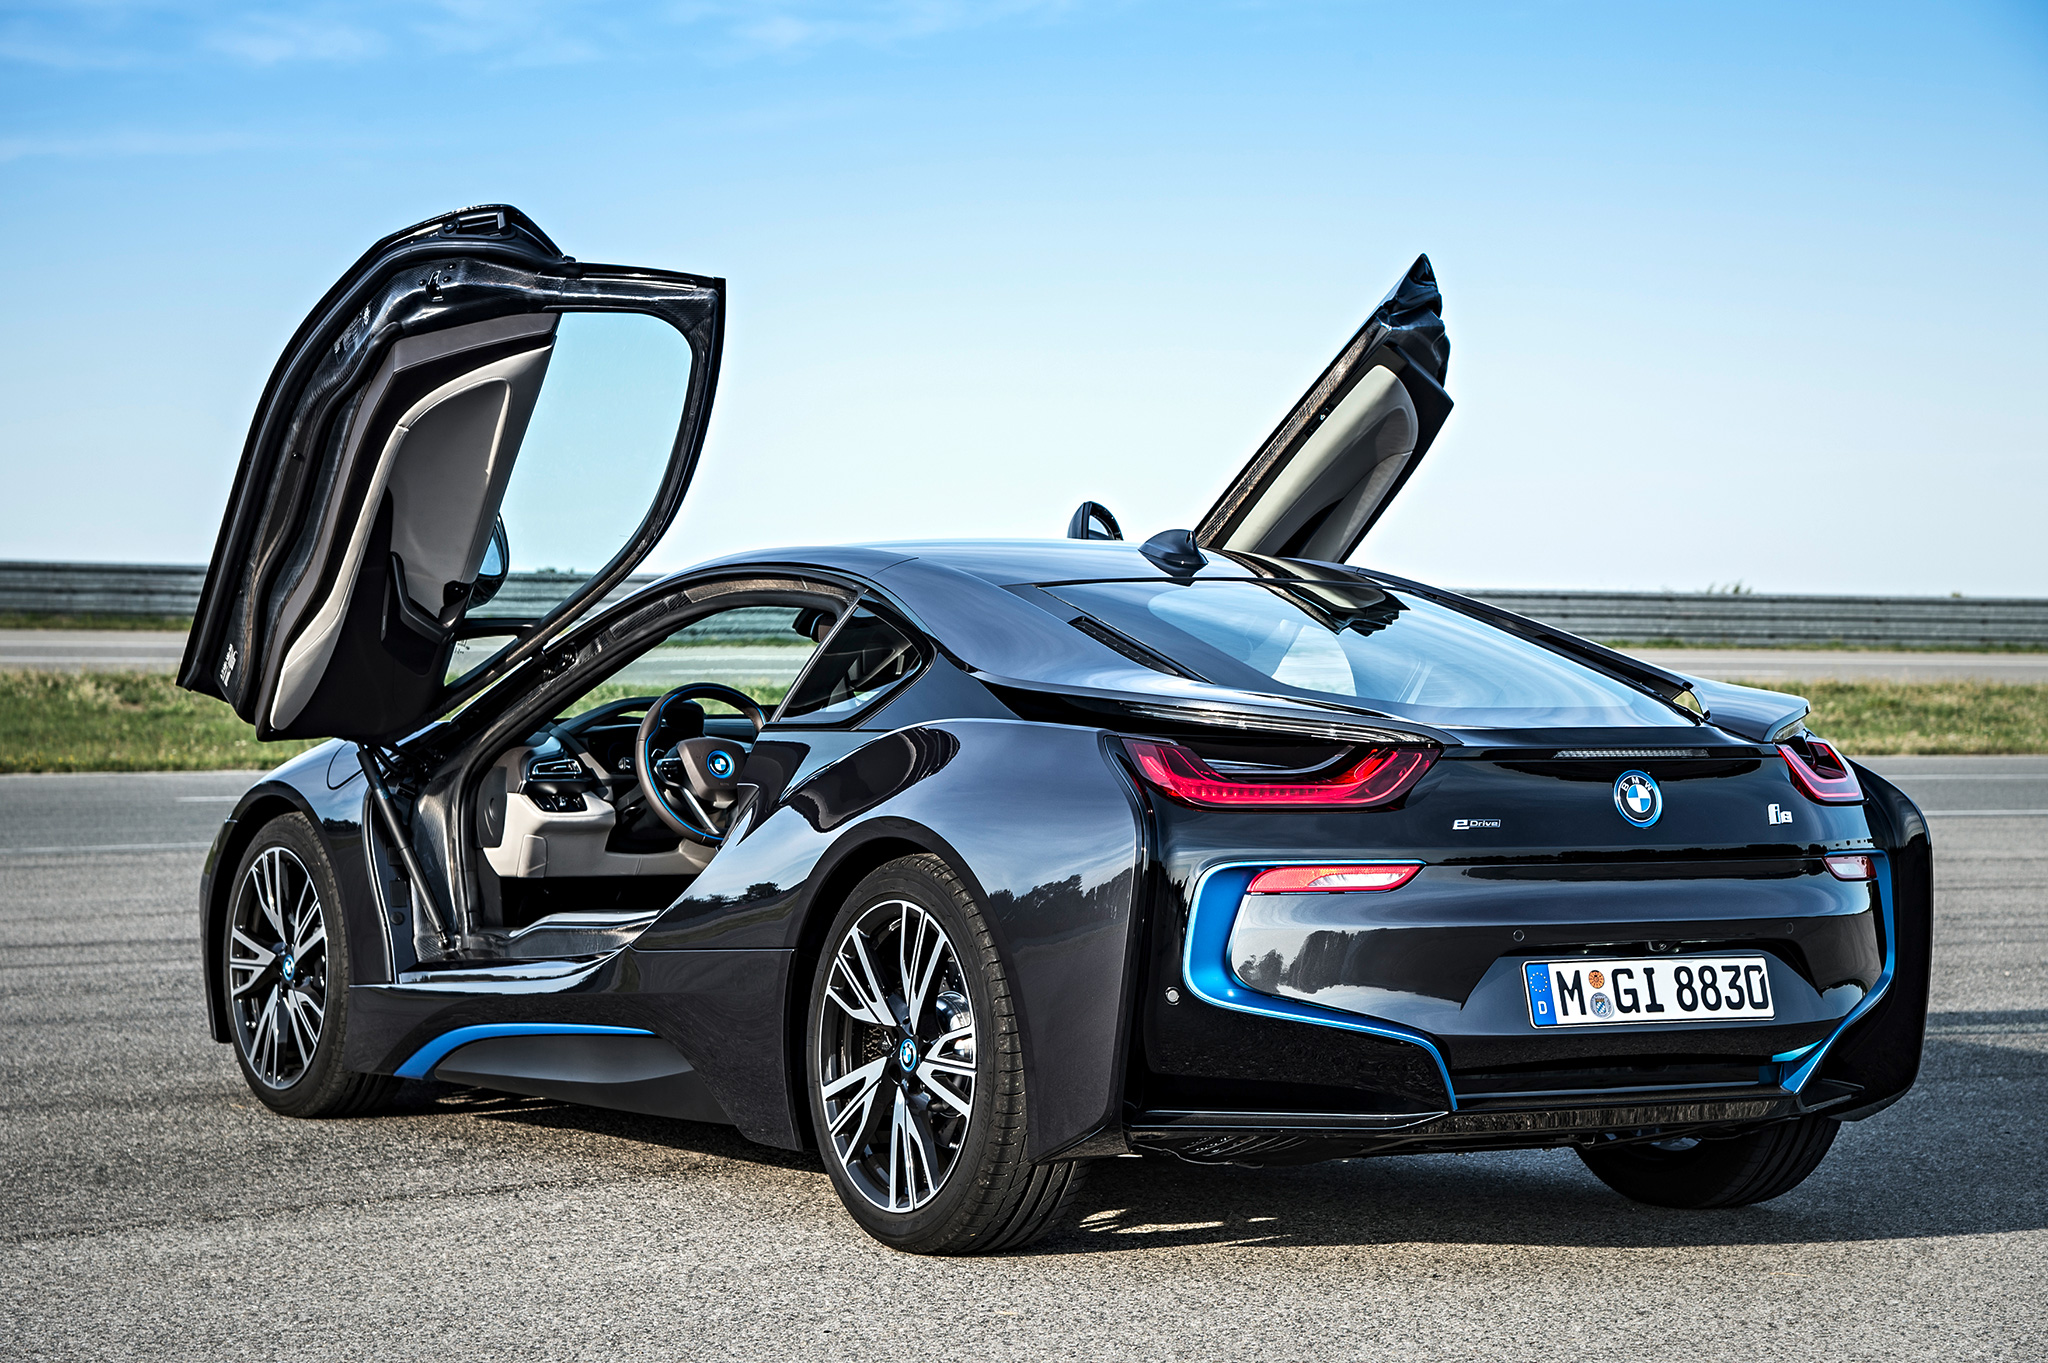 The Bmw I8 Is Over Hyped But That Doesn T Mean It S Not Great Review Bloomberg